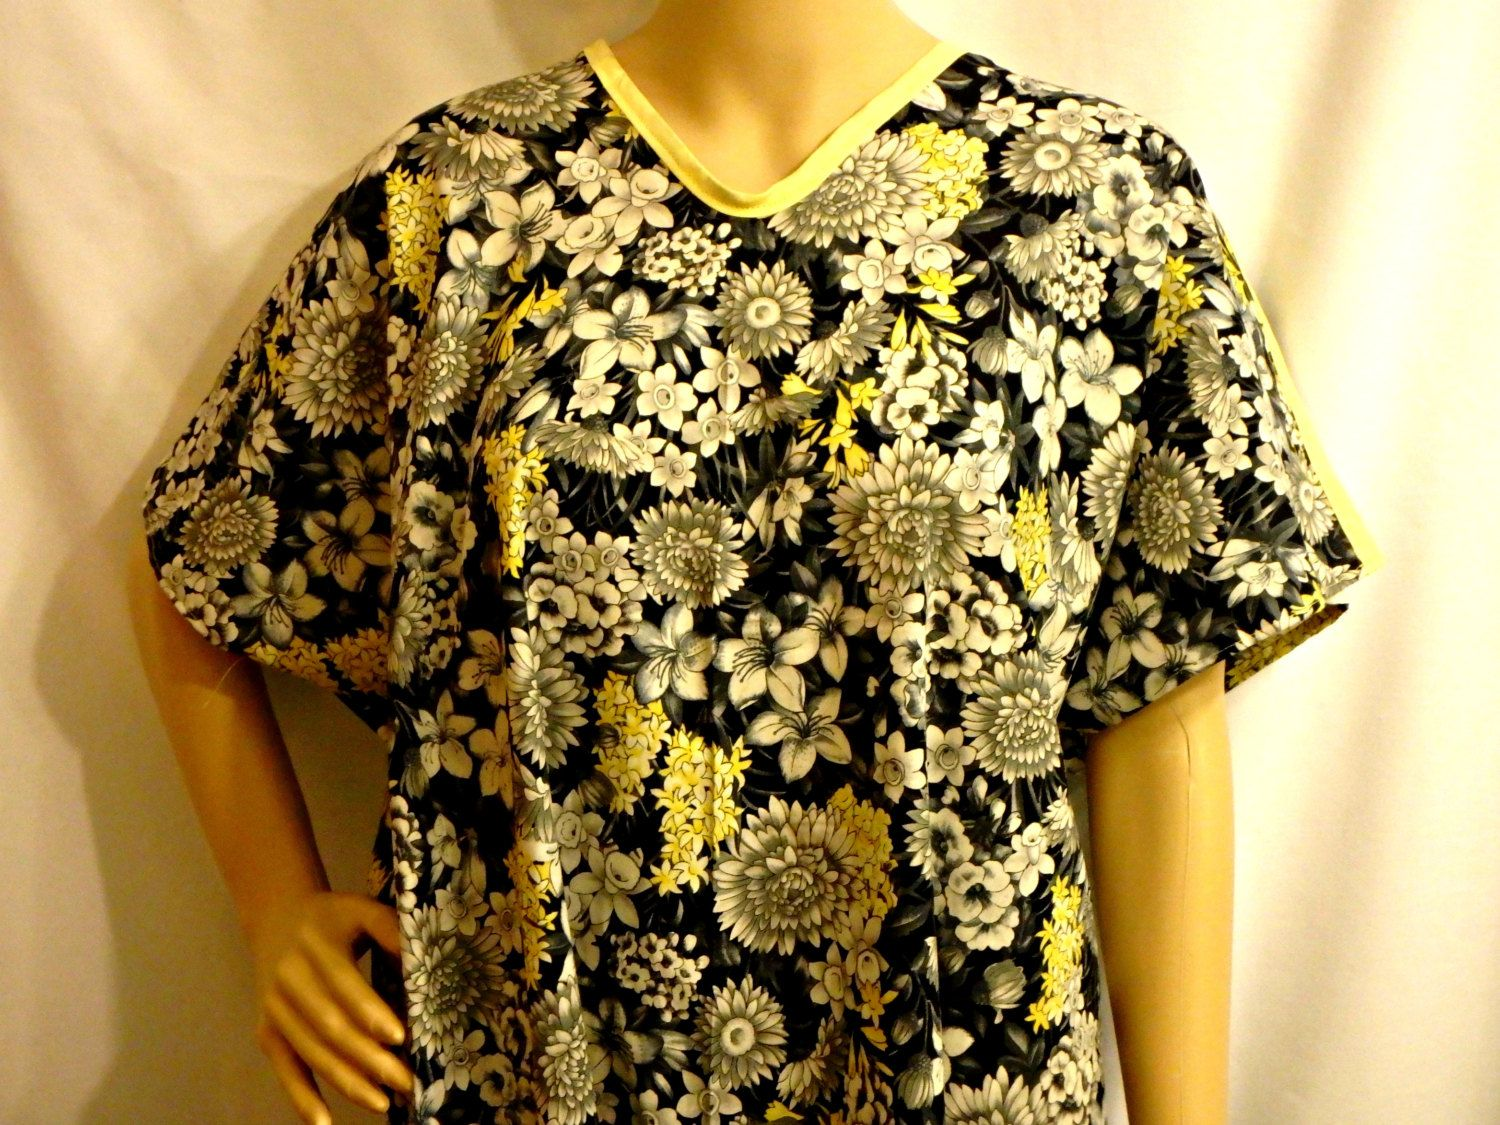 Cotton IV Hospital Gown for Bed bound Fits up to Plus Size Floral ...